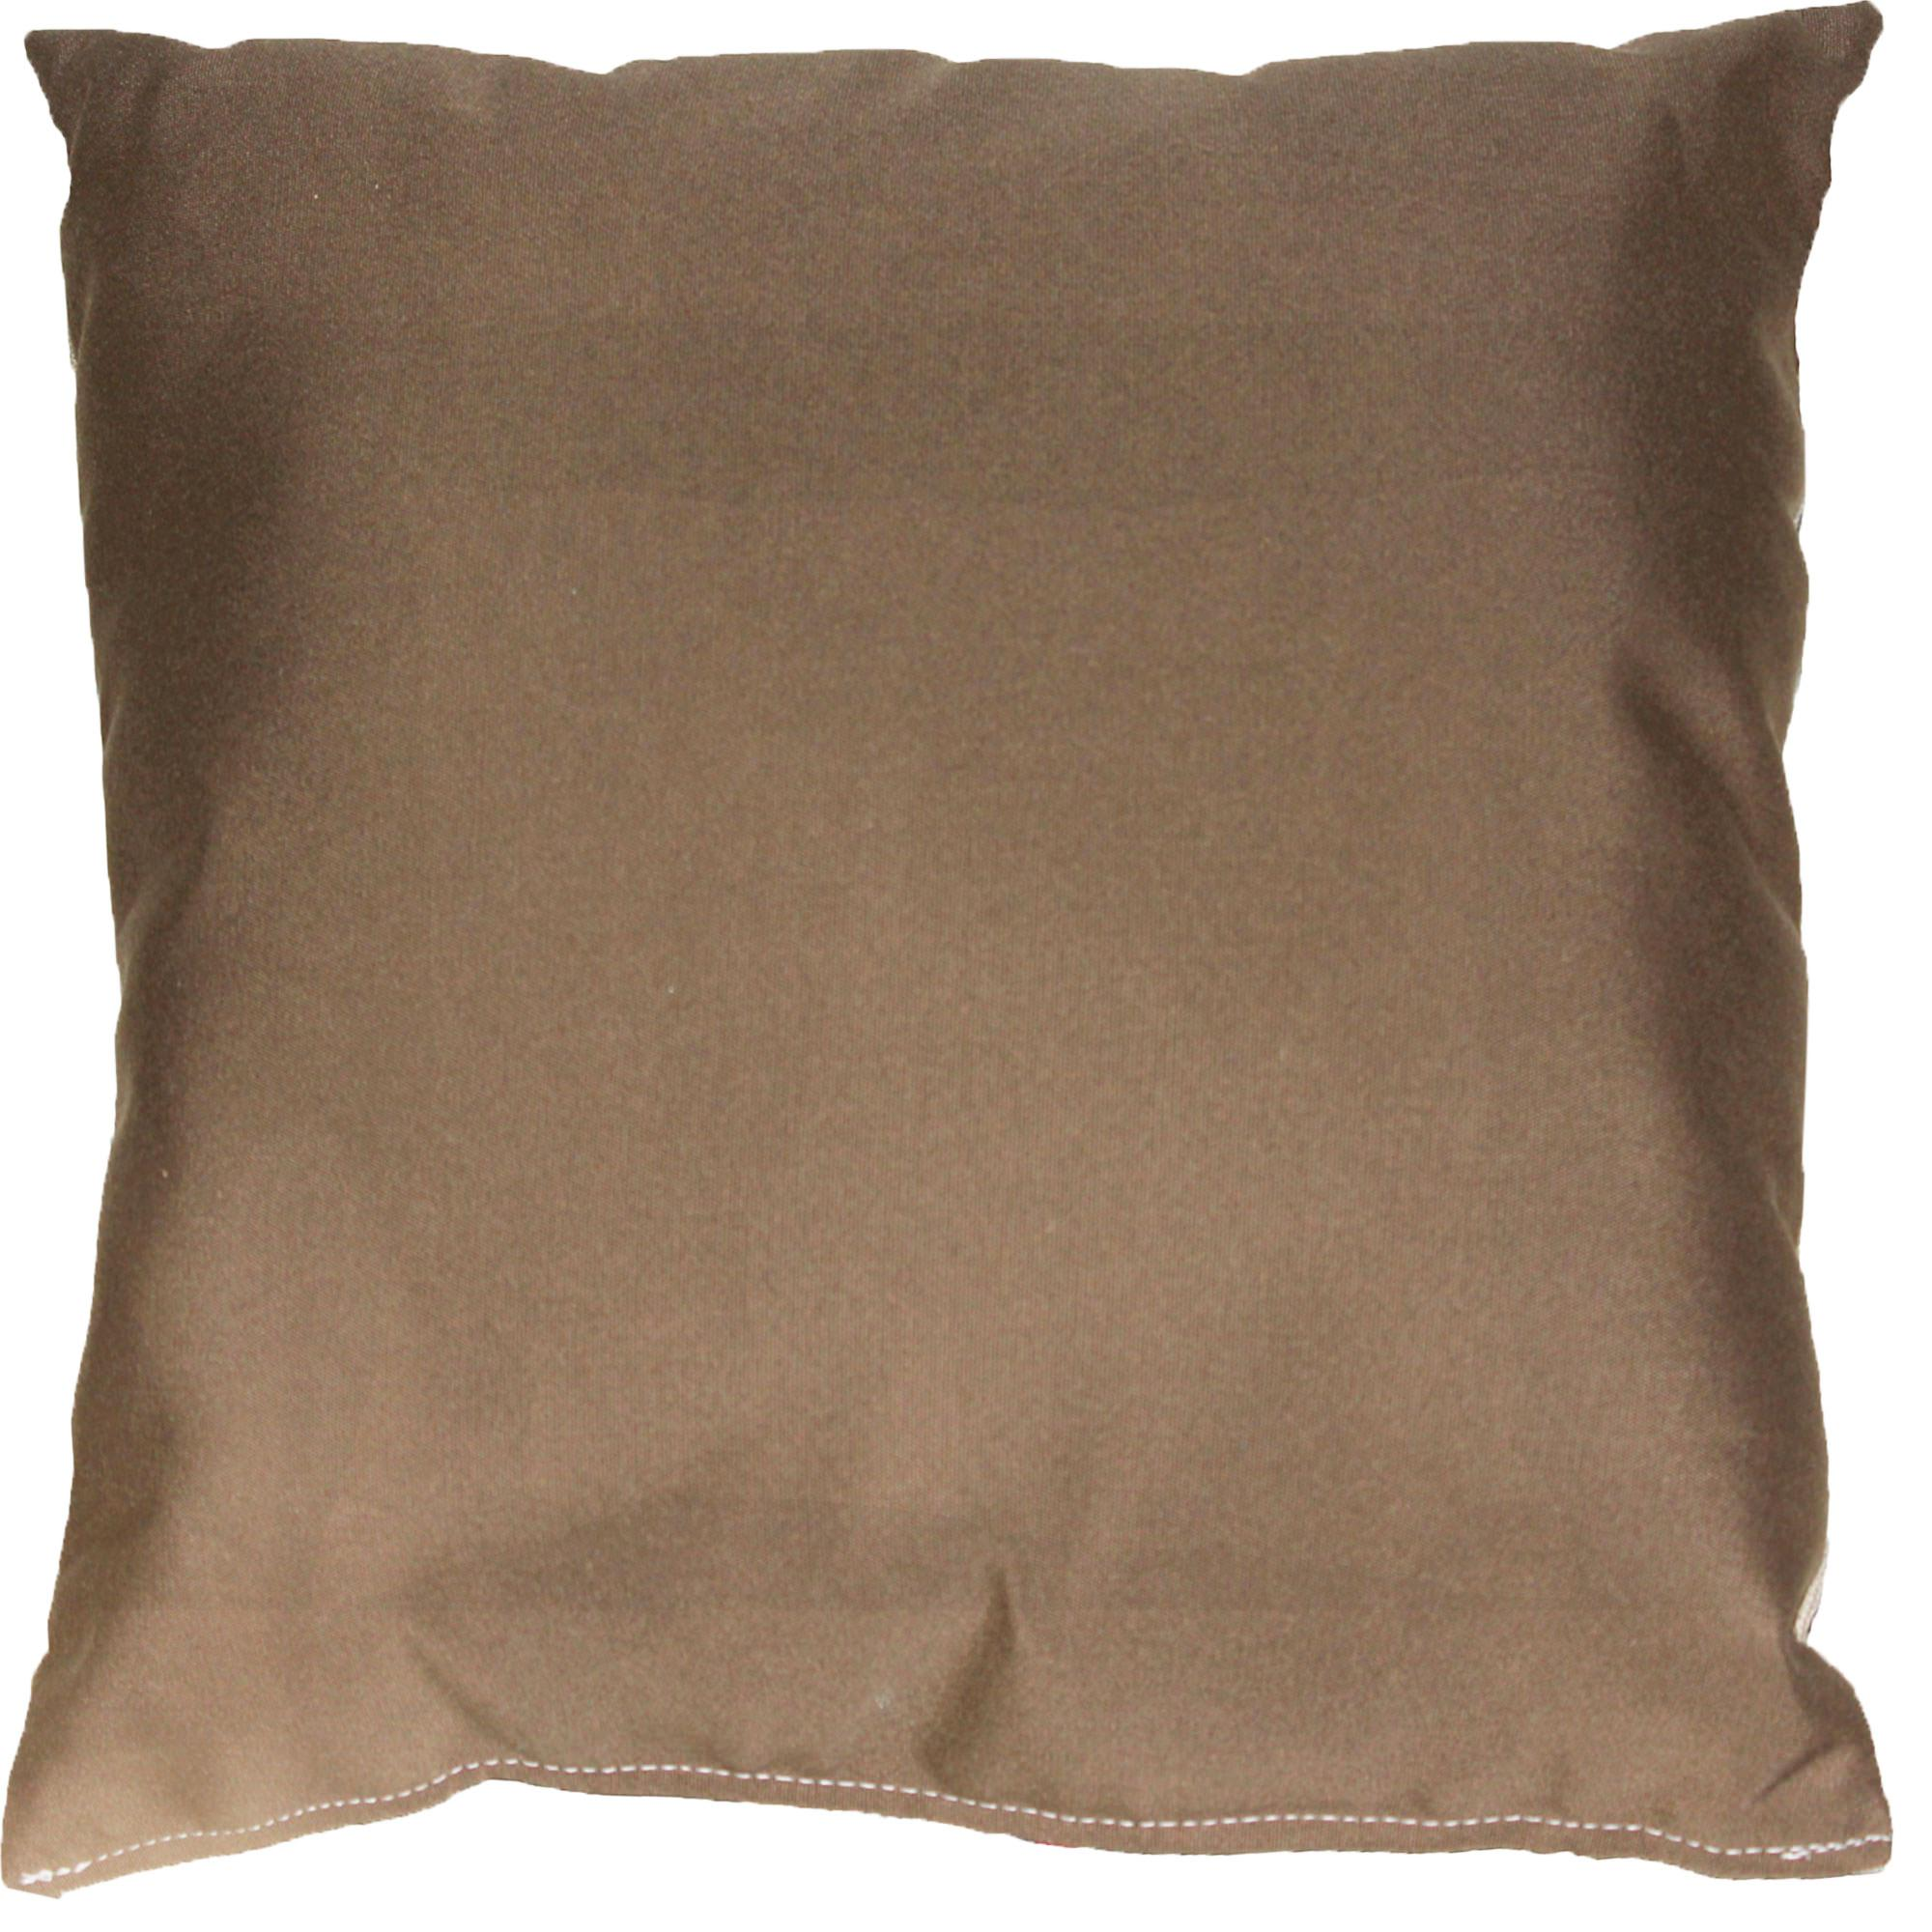 Sunbrella Throw Pillows Clearance : Cocoa Sunbrella Outdoor Throw Pillow DFOHome